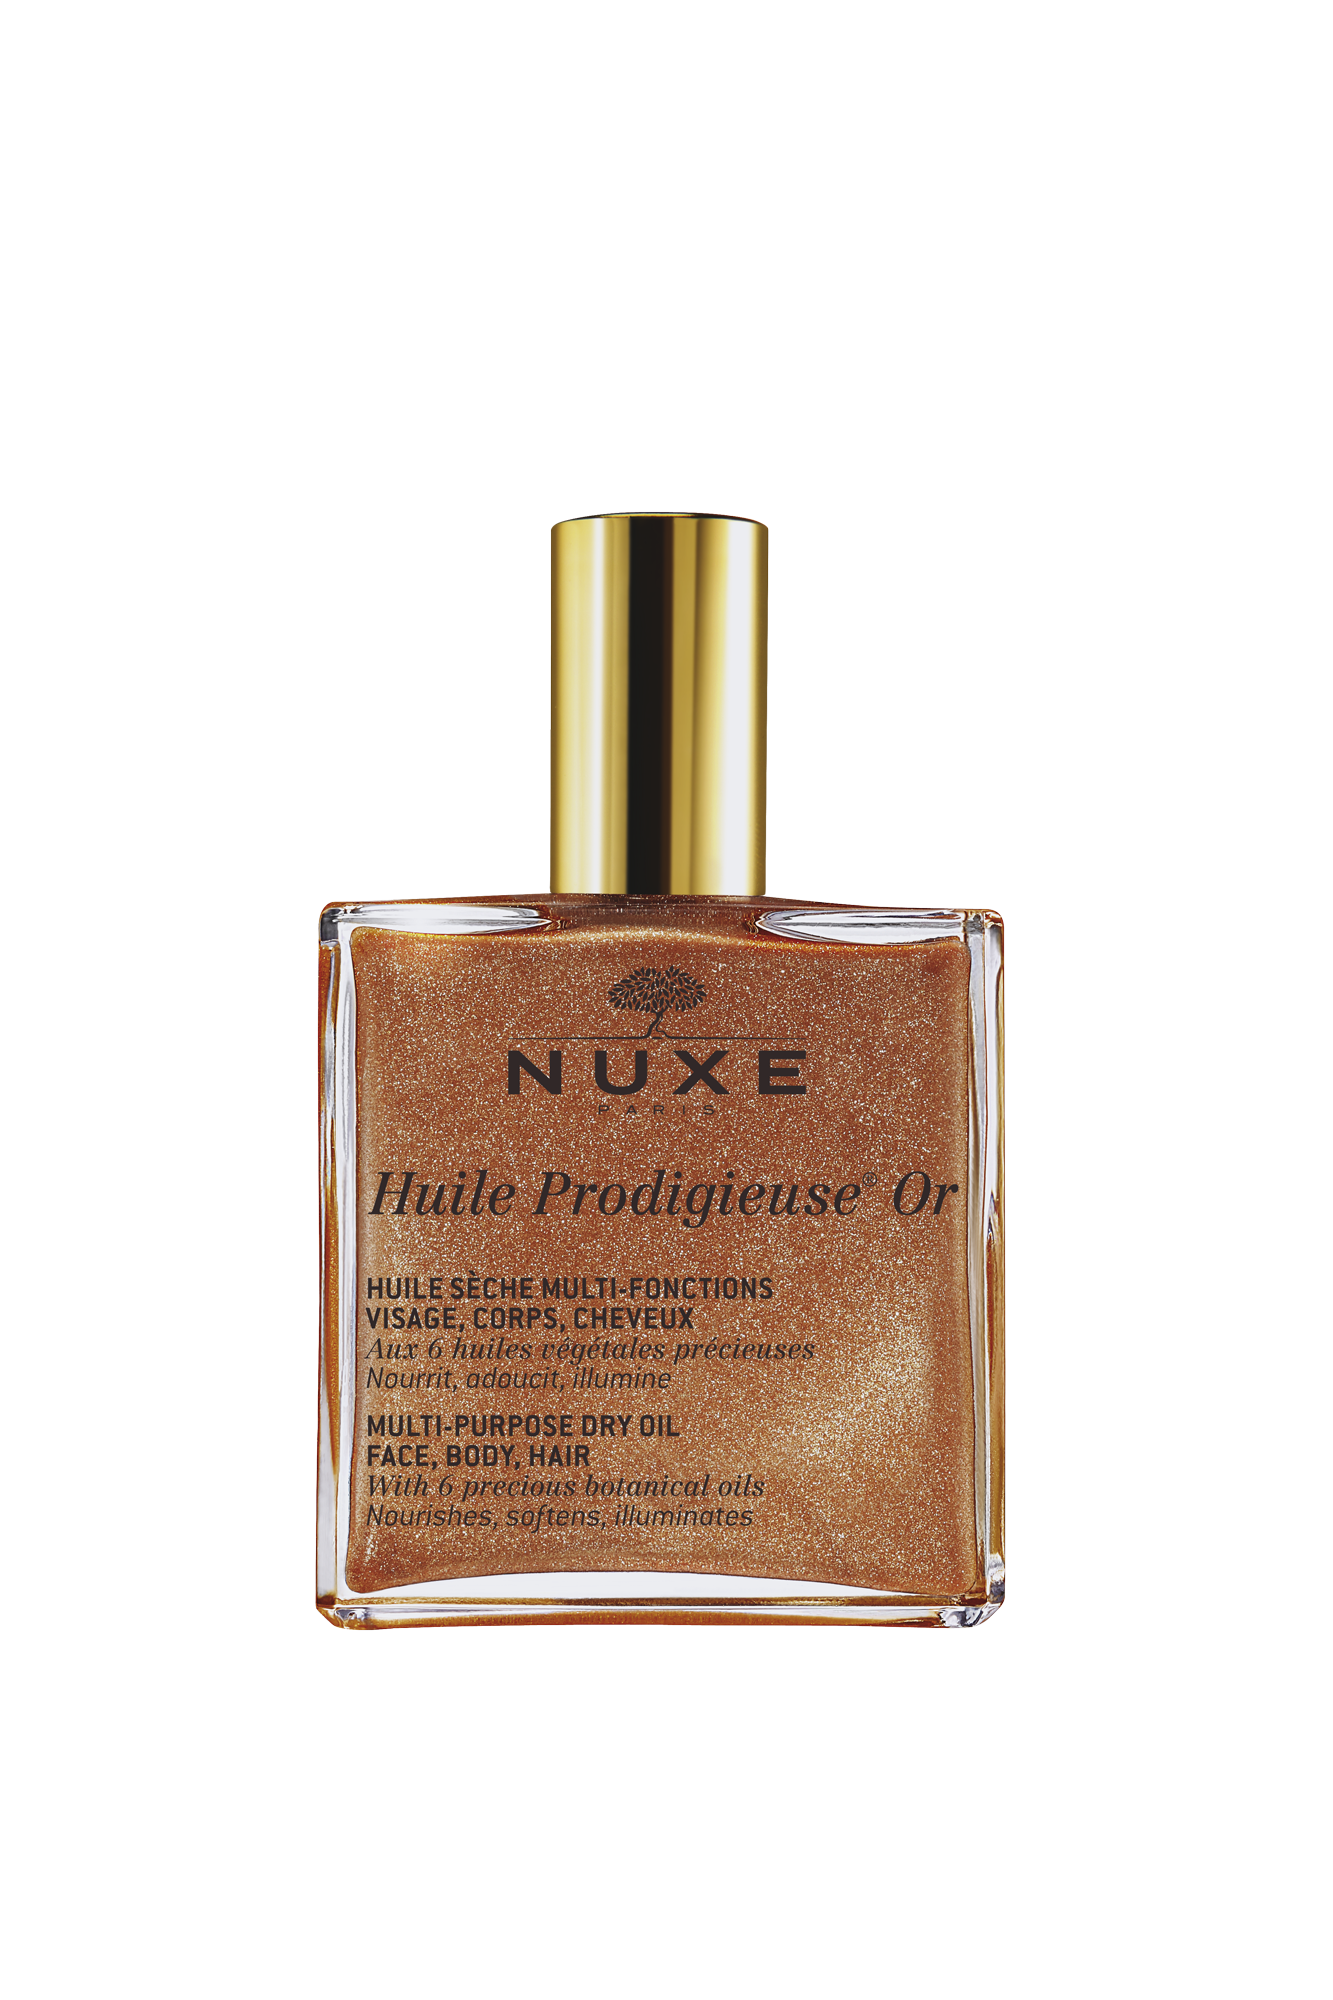 Huile Prodigieuse Or,    Nuxe   , £34.50